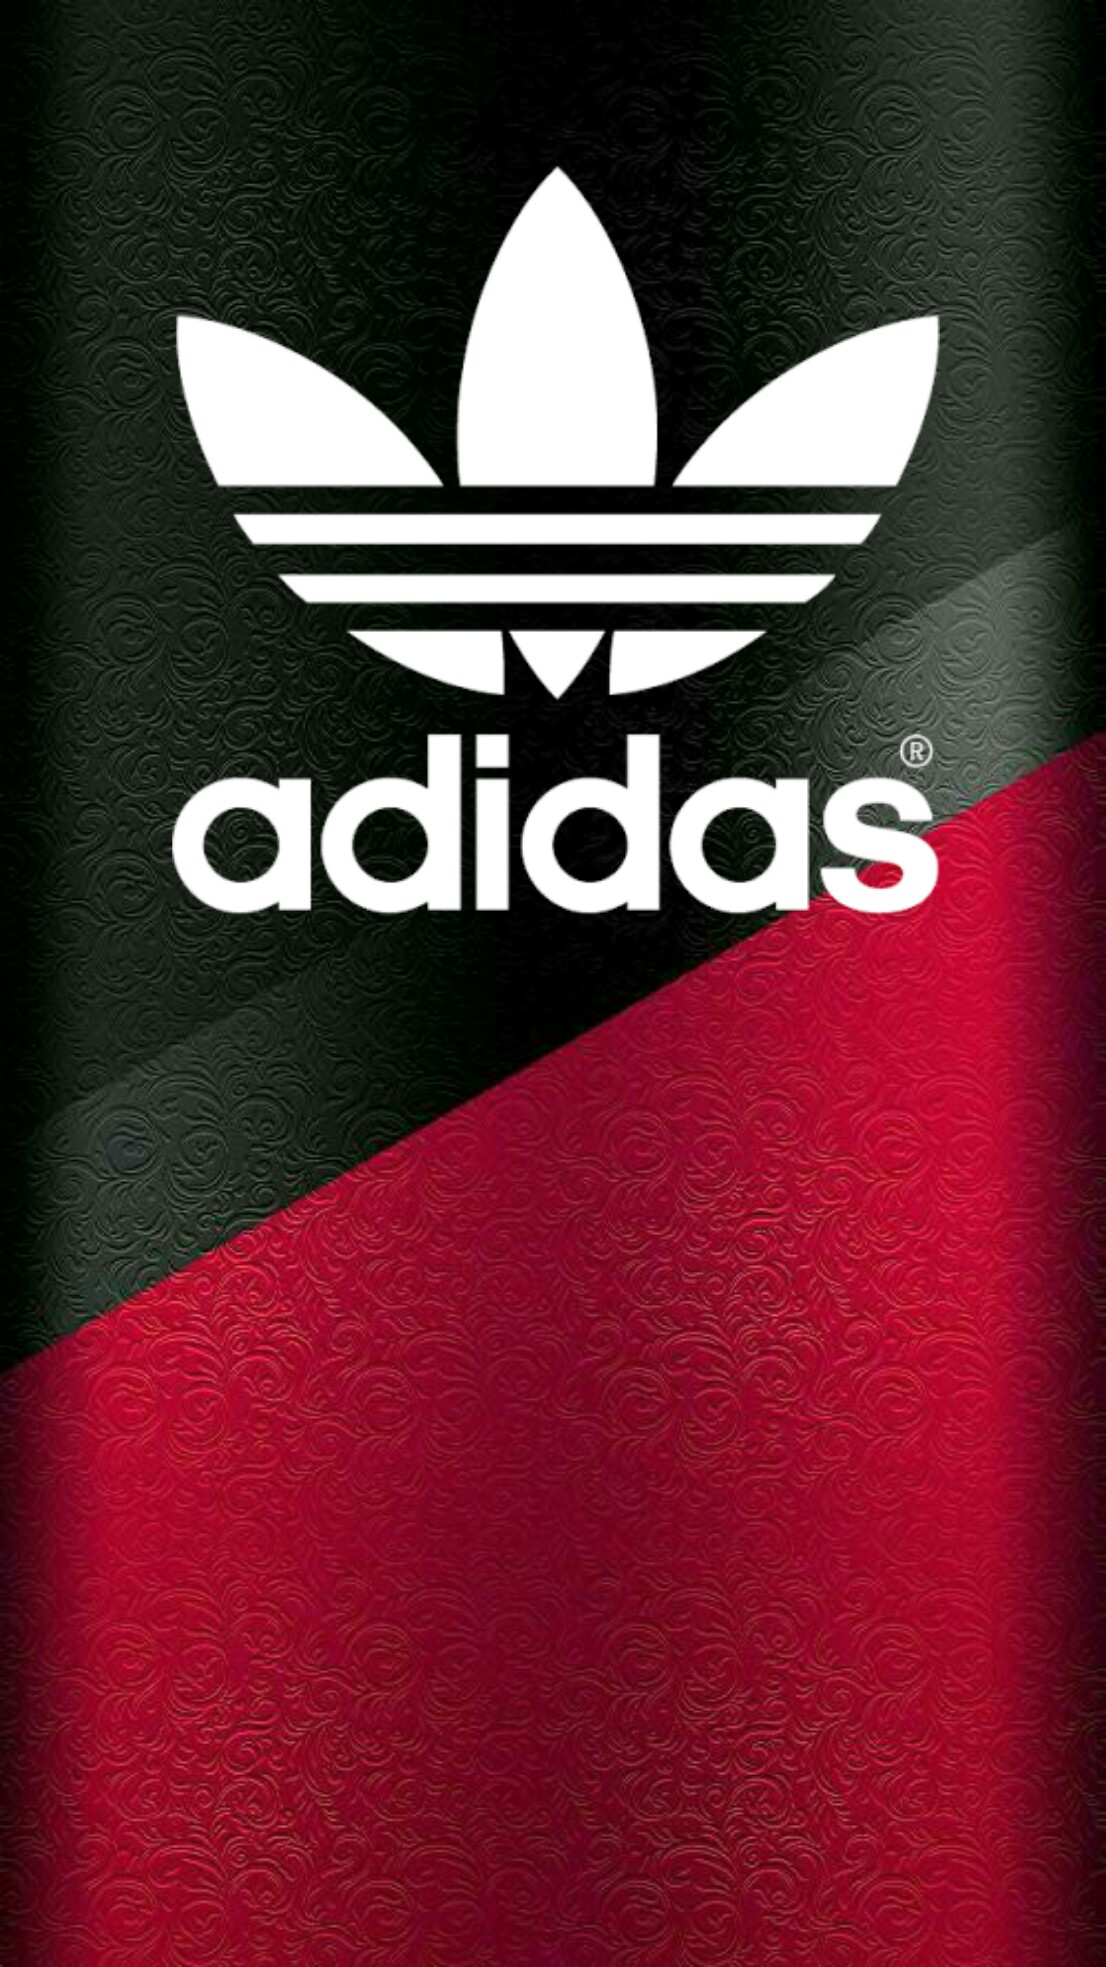 Red And Black Adidas Wallpaper Images Is Cool Wallpapers